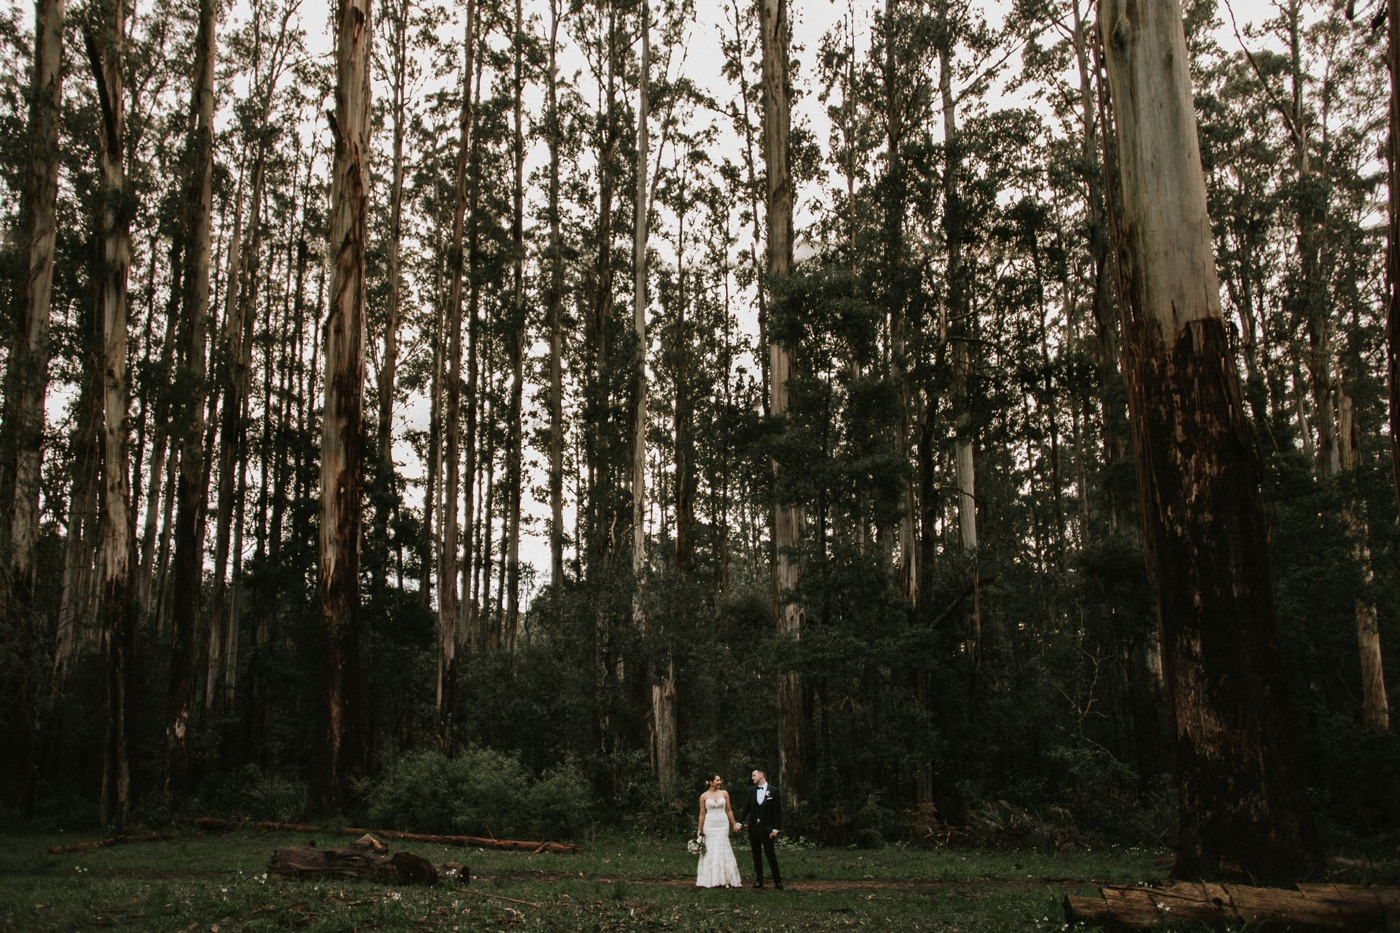 wesleybianca_dandenongs-sherbrooke-poets-lane-wedding_melbourne-quirky-fun-candid-wedding-photography_49